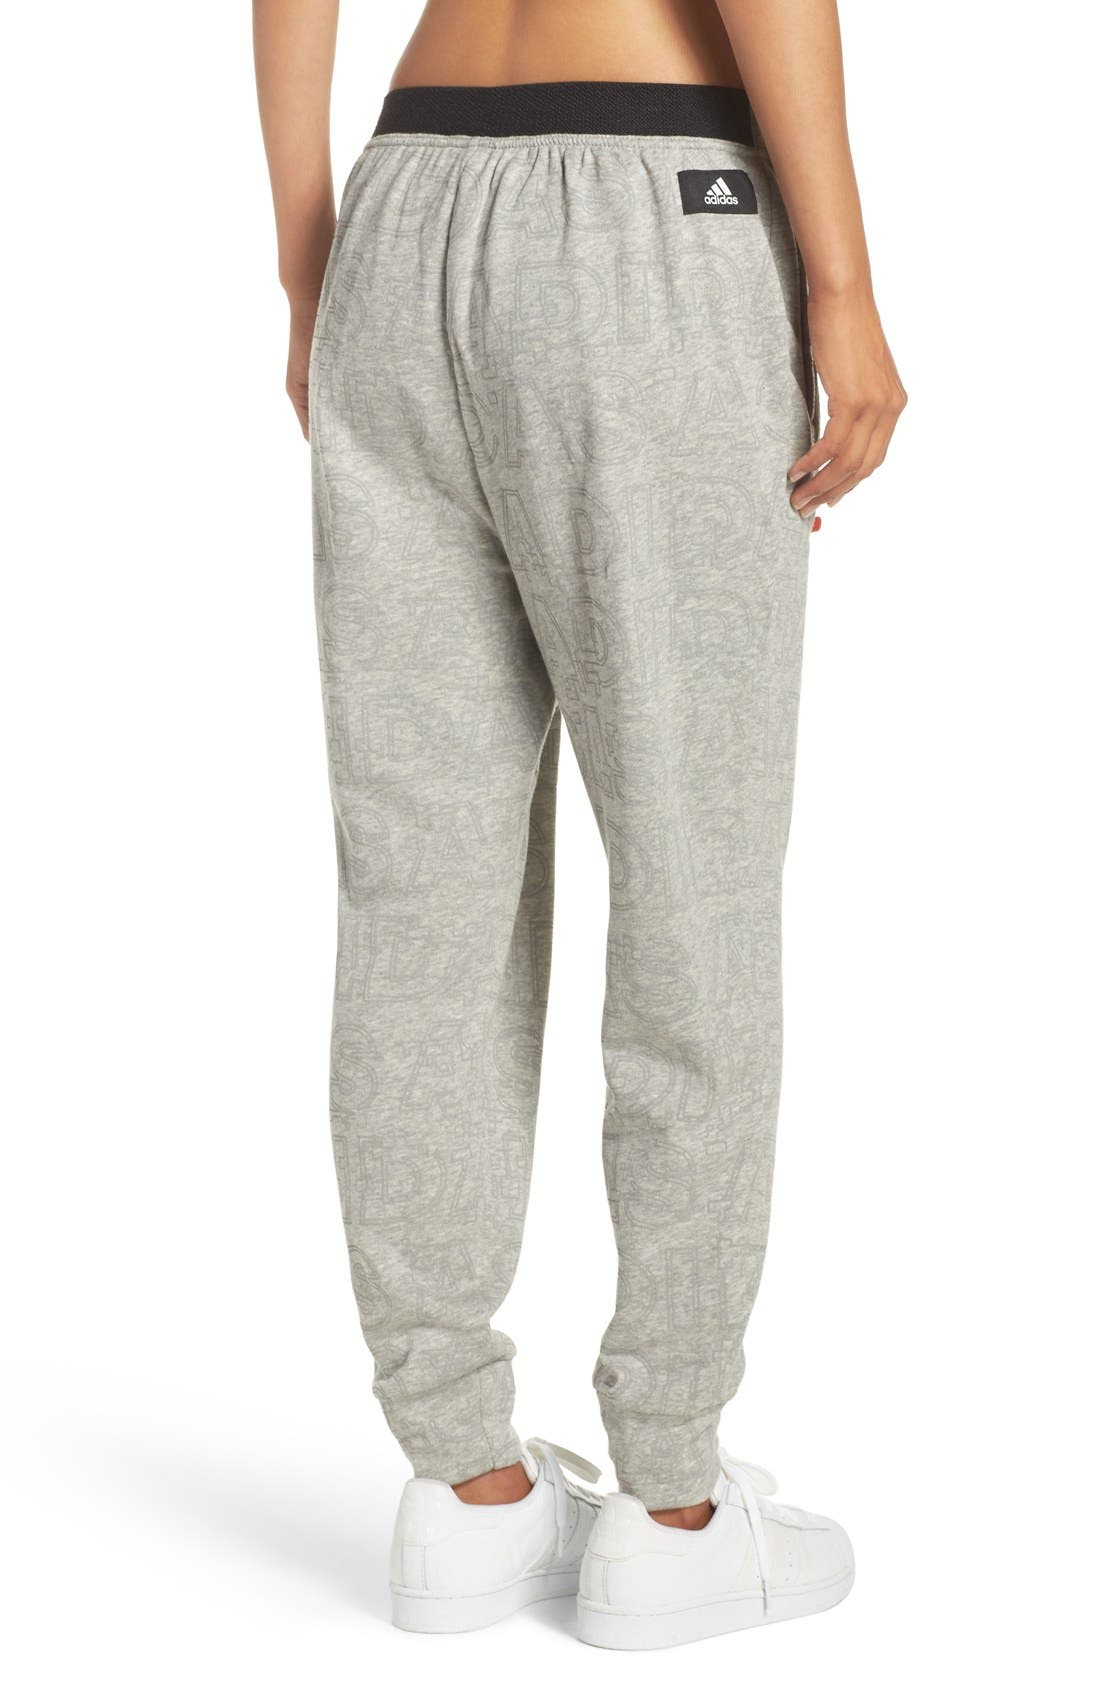 ADIDAS,                             Boyfriend Lounge Pants,                             Alternate thumbnail 4, color,                             035